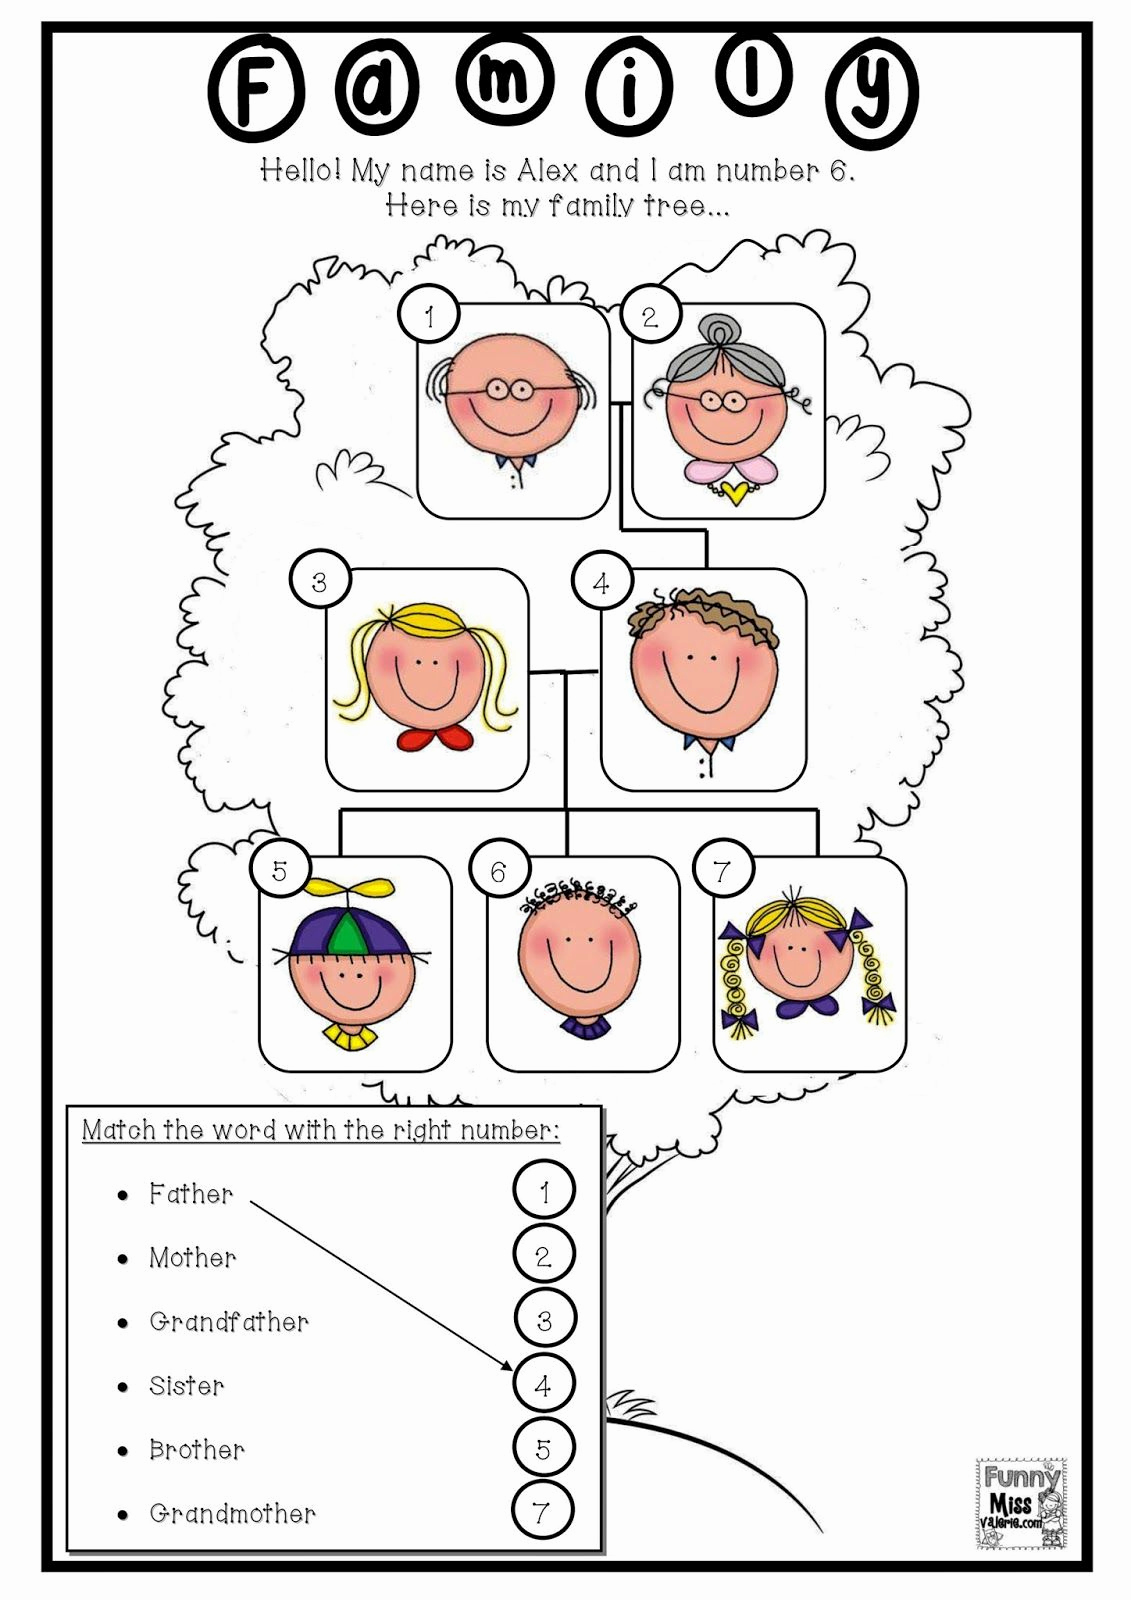 Family Tree Worksheet Printable Unique Resultado De Imagen De Family Members Worksheets for First